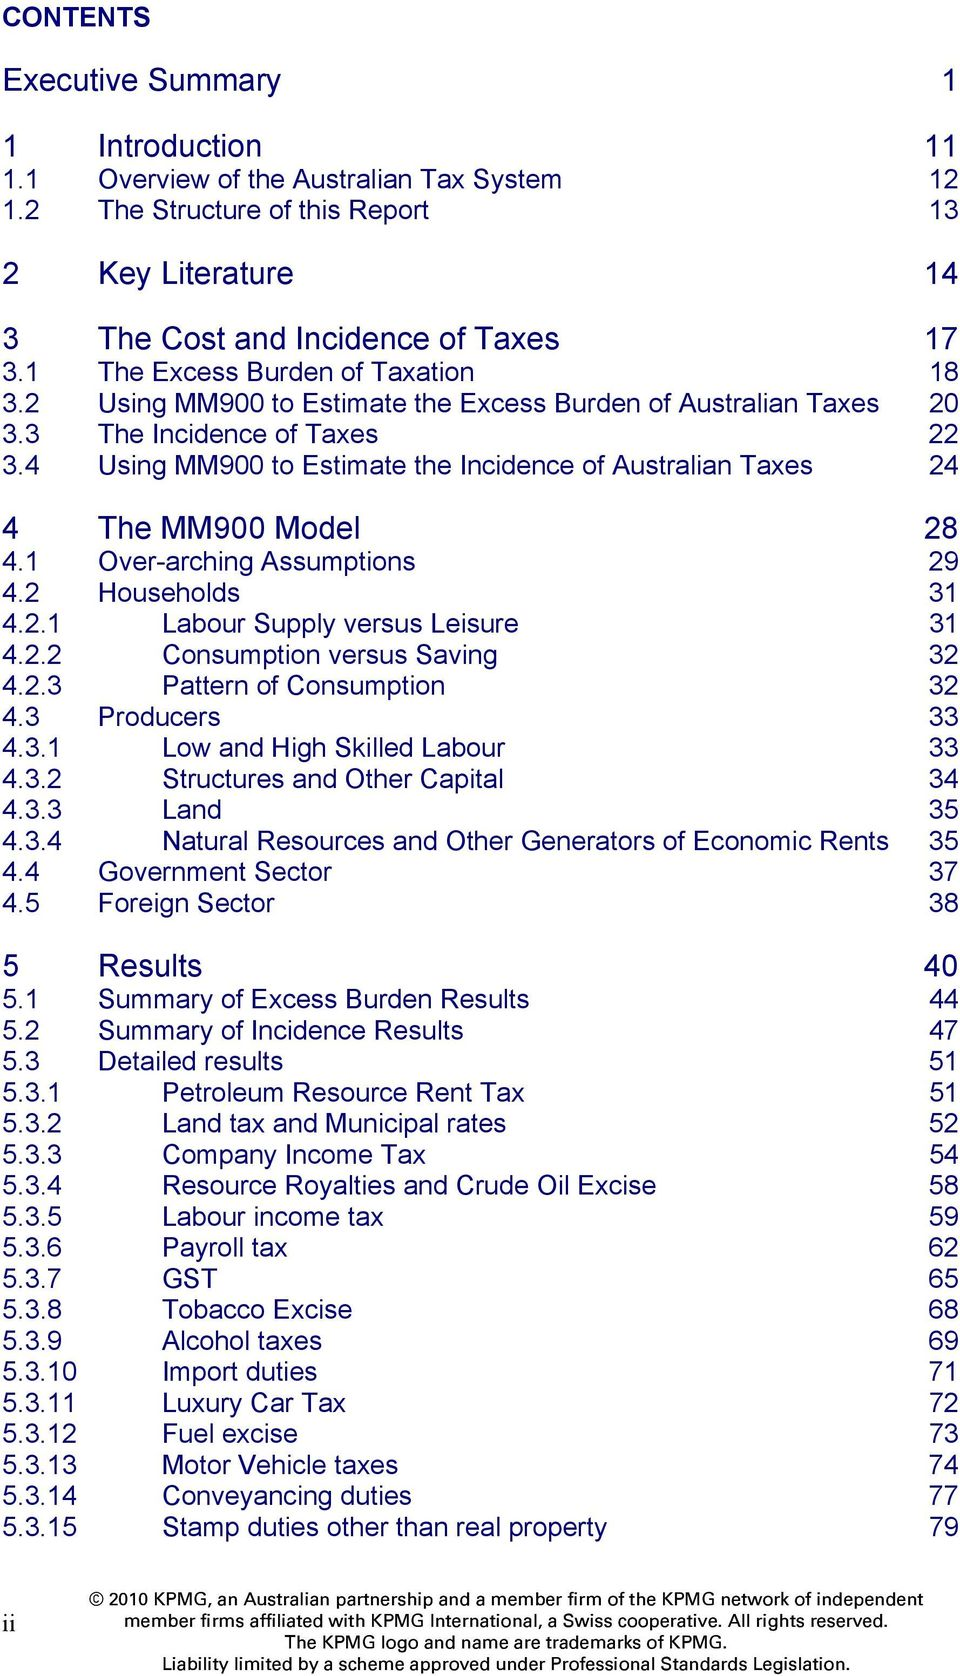 4 Using MM900 to Estimate the Incidence of Australian Taxes 24 4 The MM900 Model 28 4.1 Over-arching Assumptions 29 4.2 Households 31 4.2.1 Labour Supply versus Leisure 31 4.2.2 Consumption versus Saving 32 4.